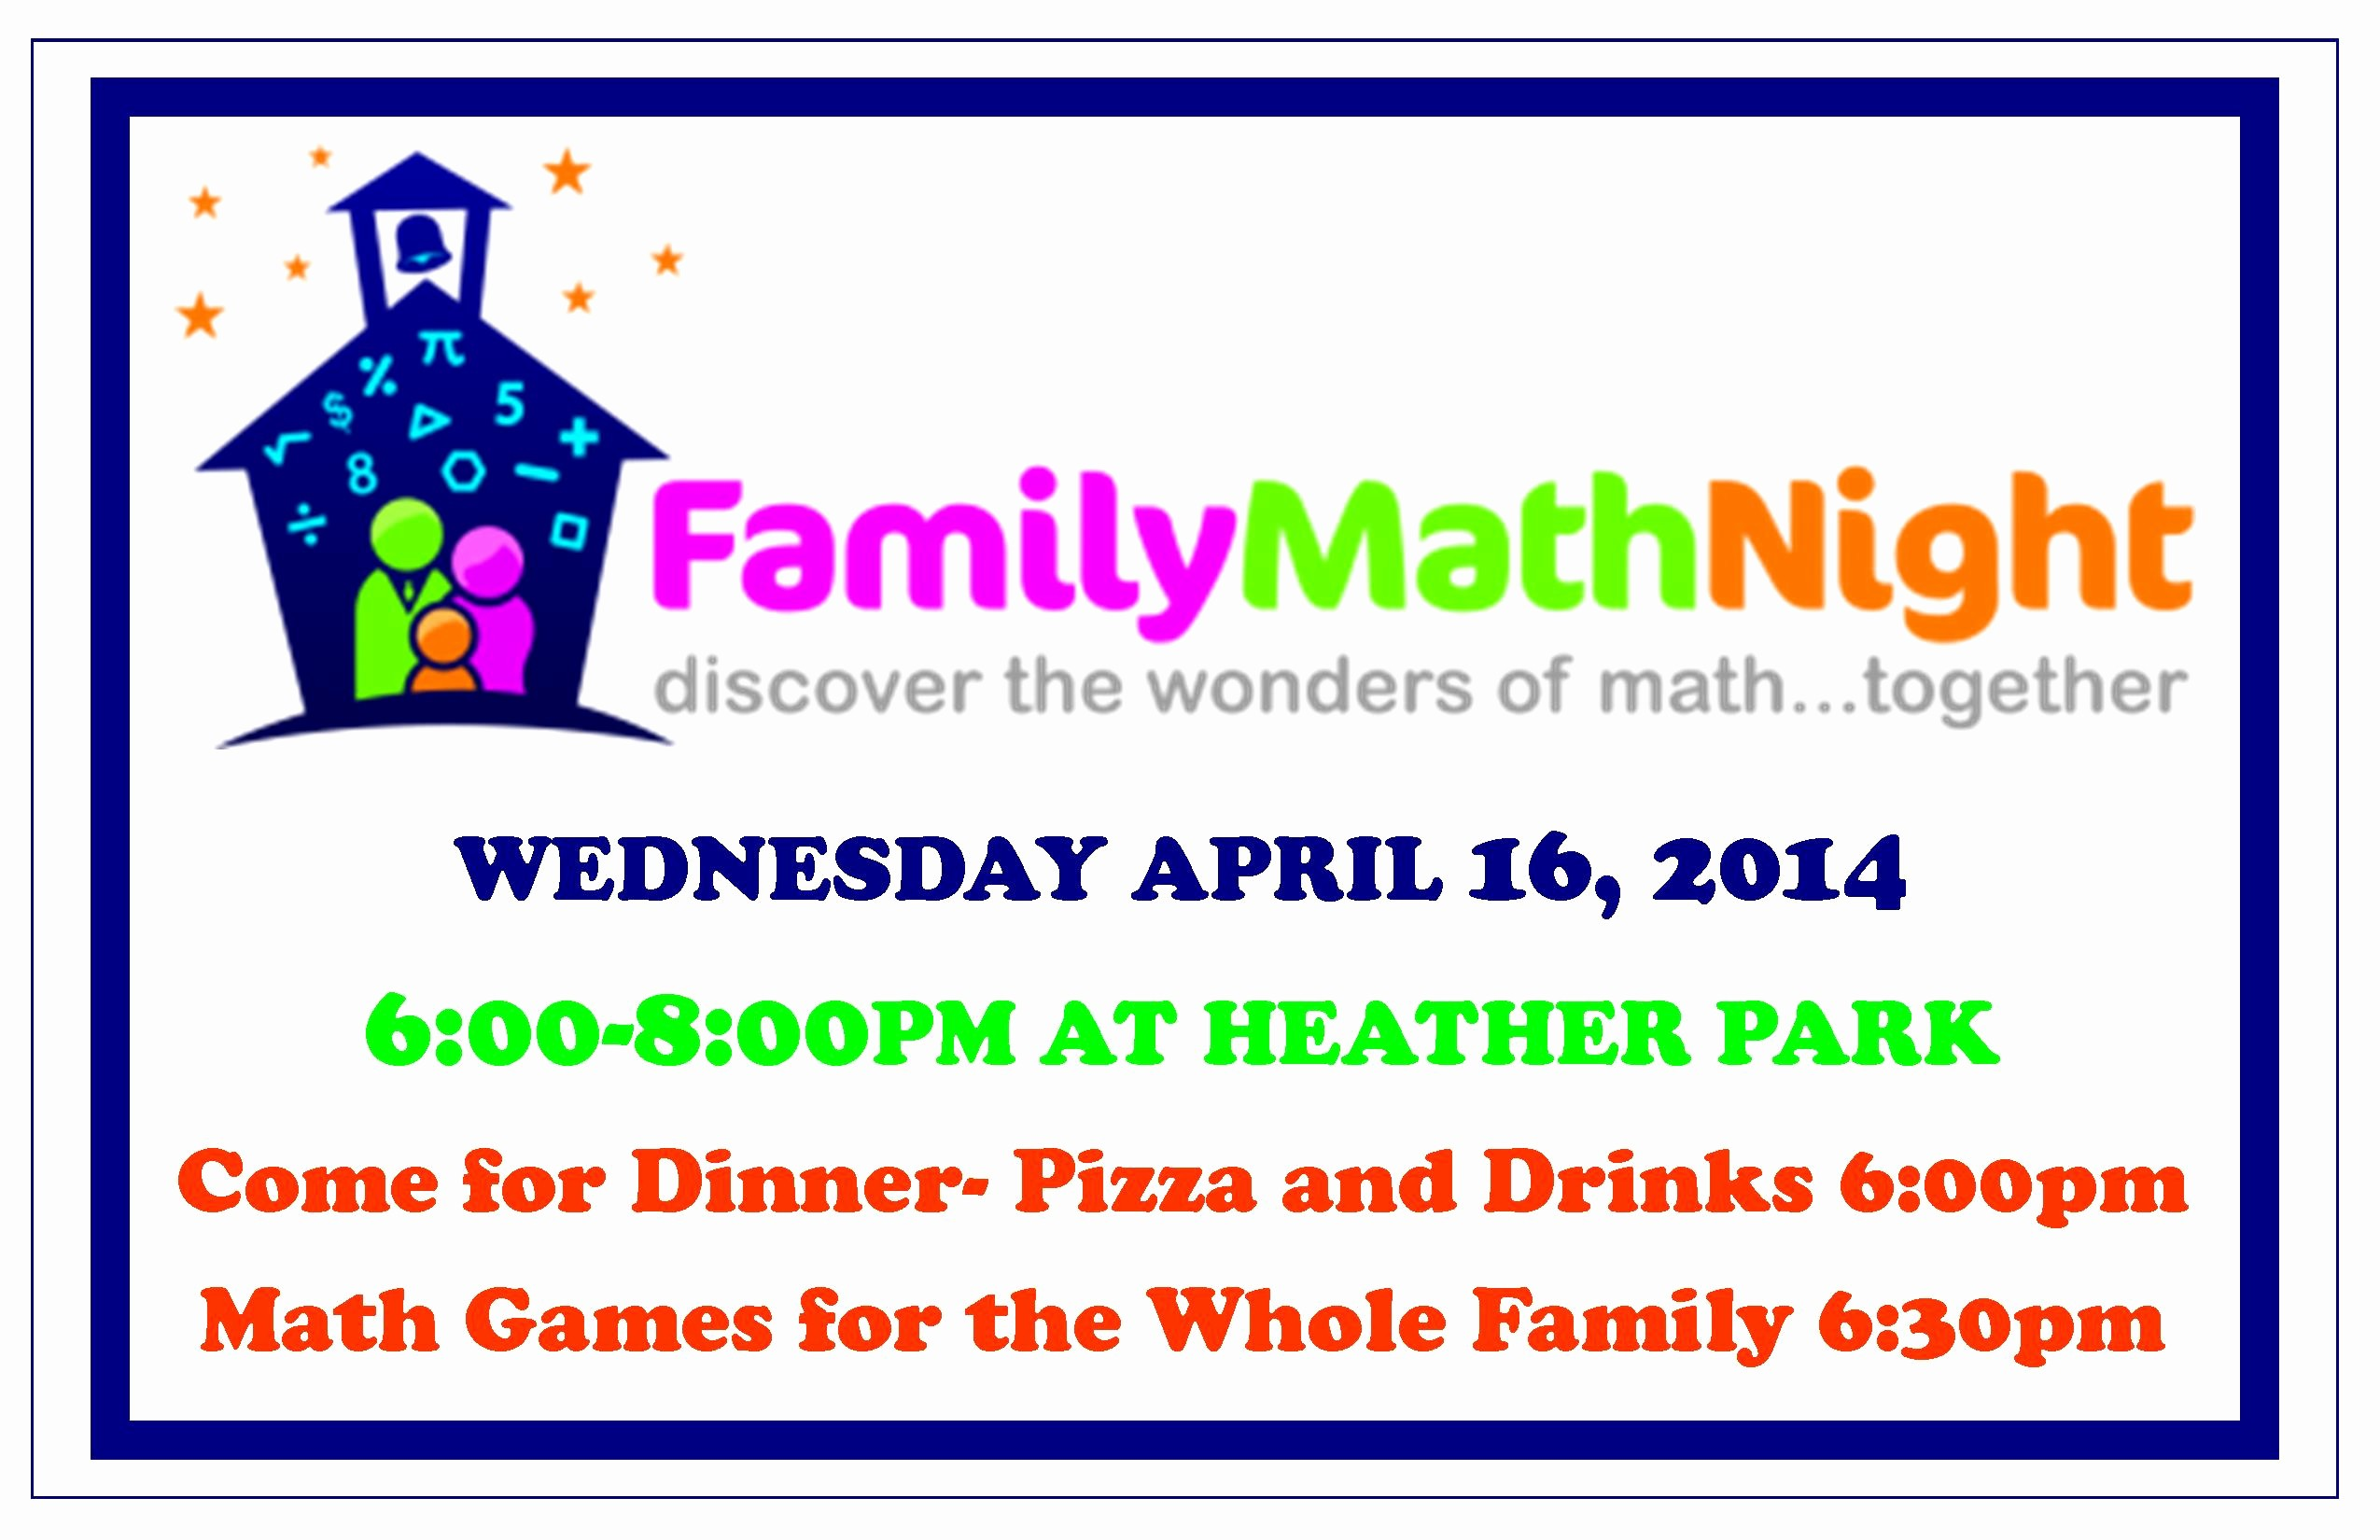 Parent Night Out Flyer Template Unique Family Math Night at Heather Park School Wednesday April